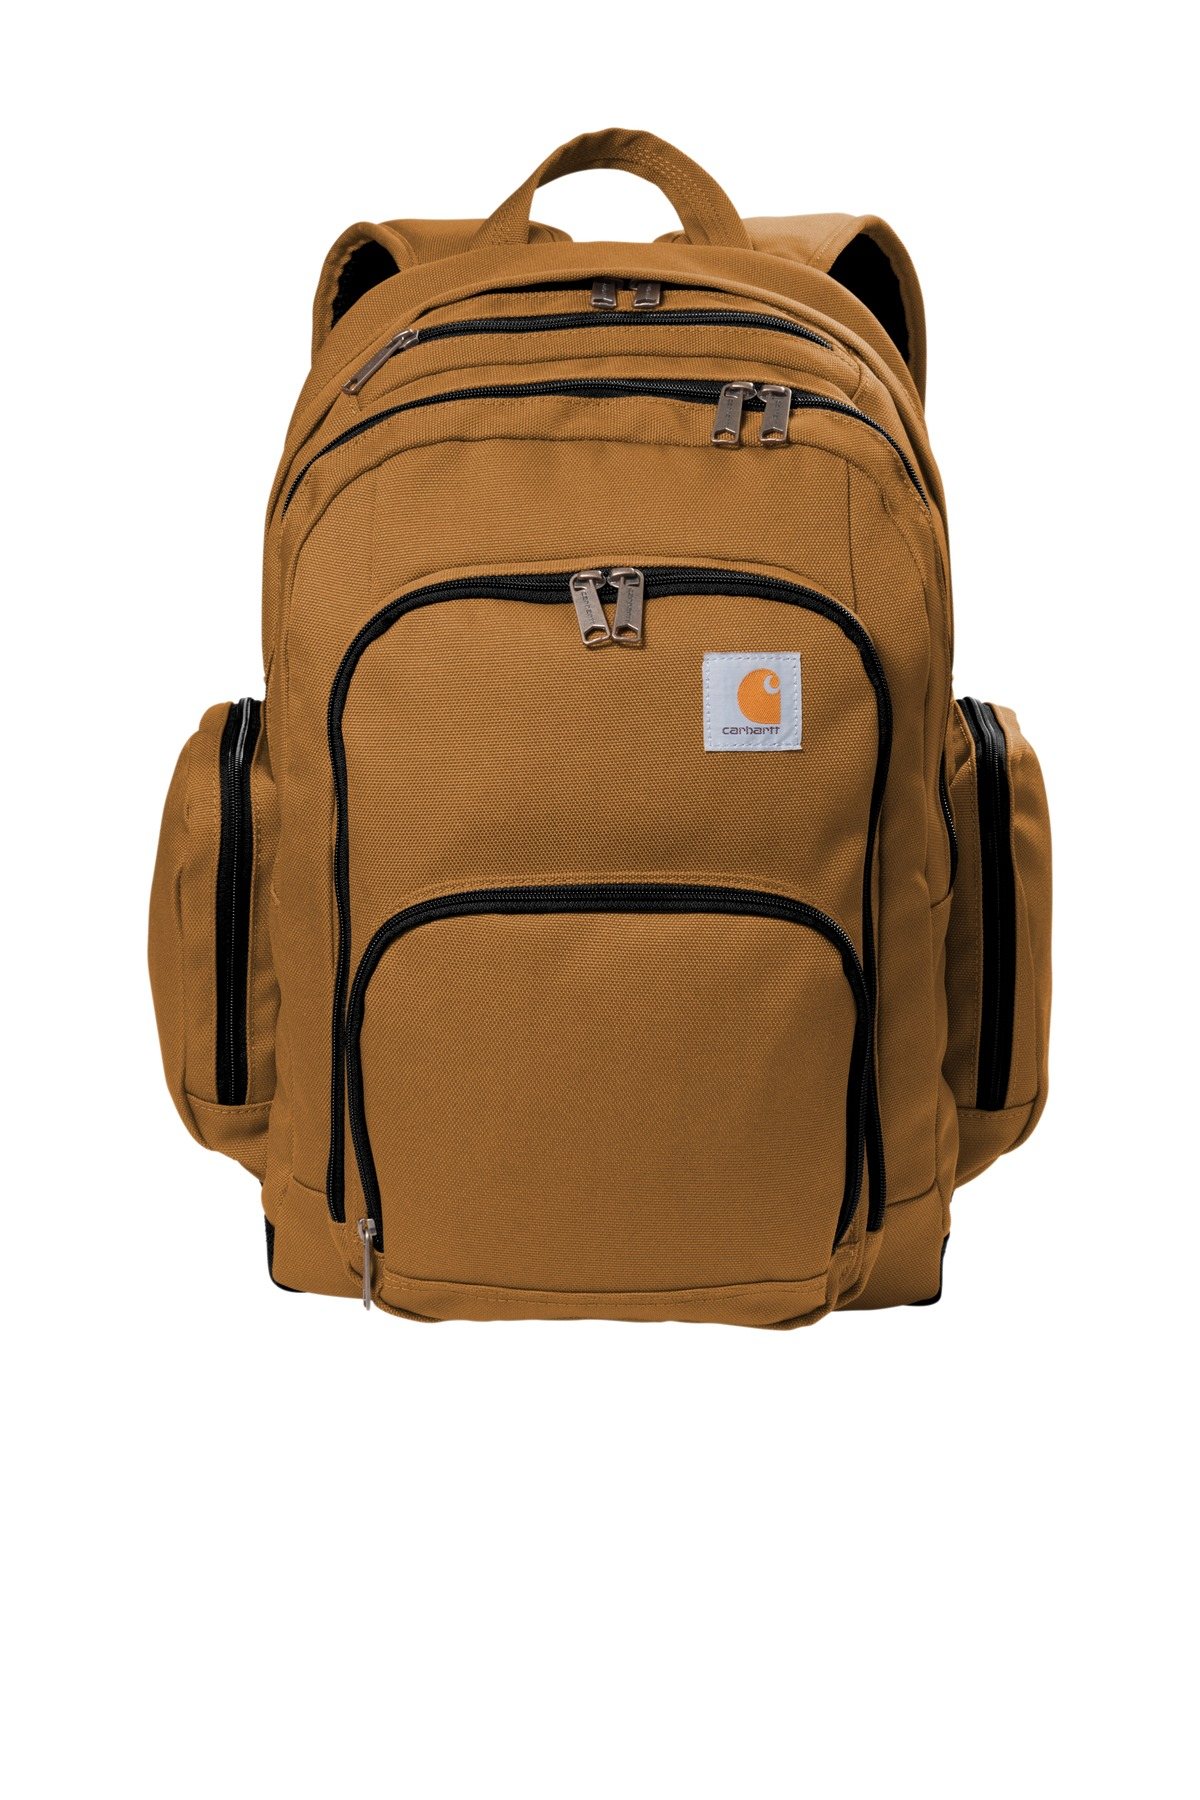 Carhartt  ®  Foundry Series Pro Backpack. CT89176508 - Carhartt Brown